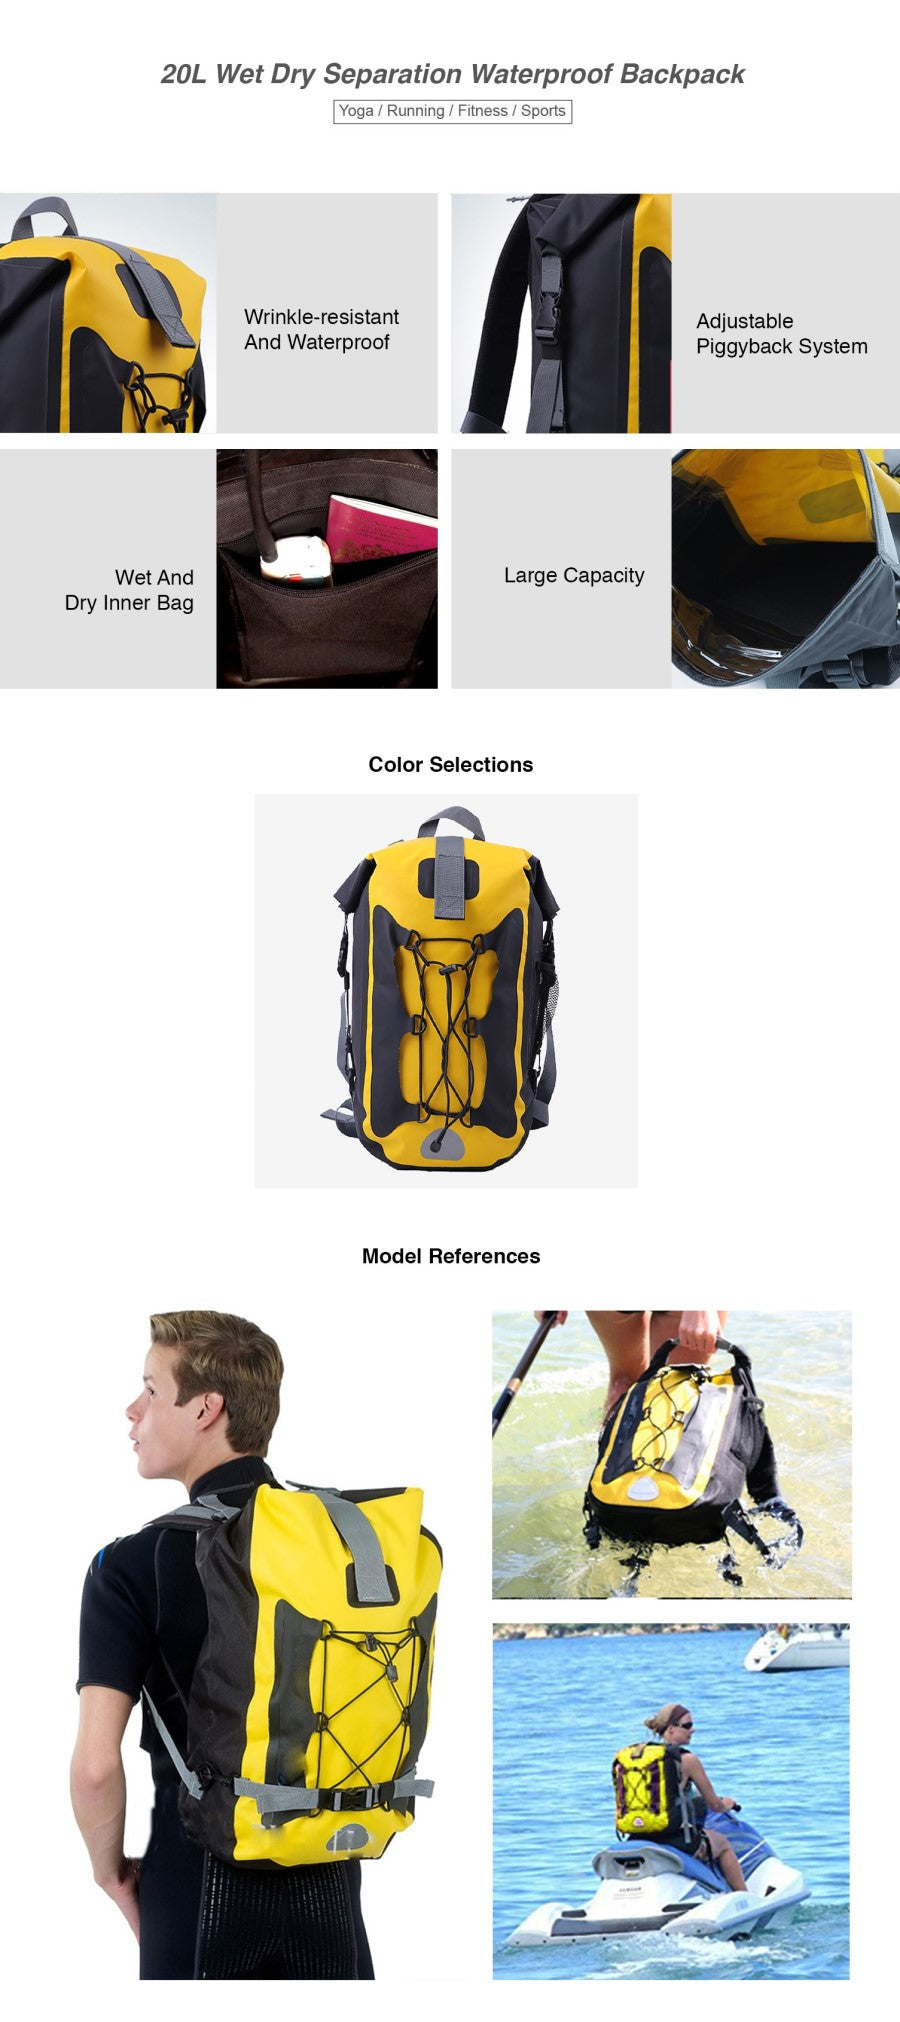 20L Wet Dry Separation Waterproof Backpack